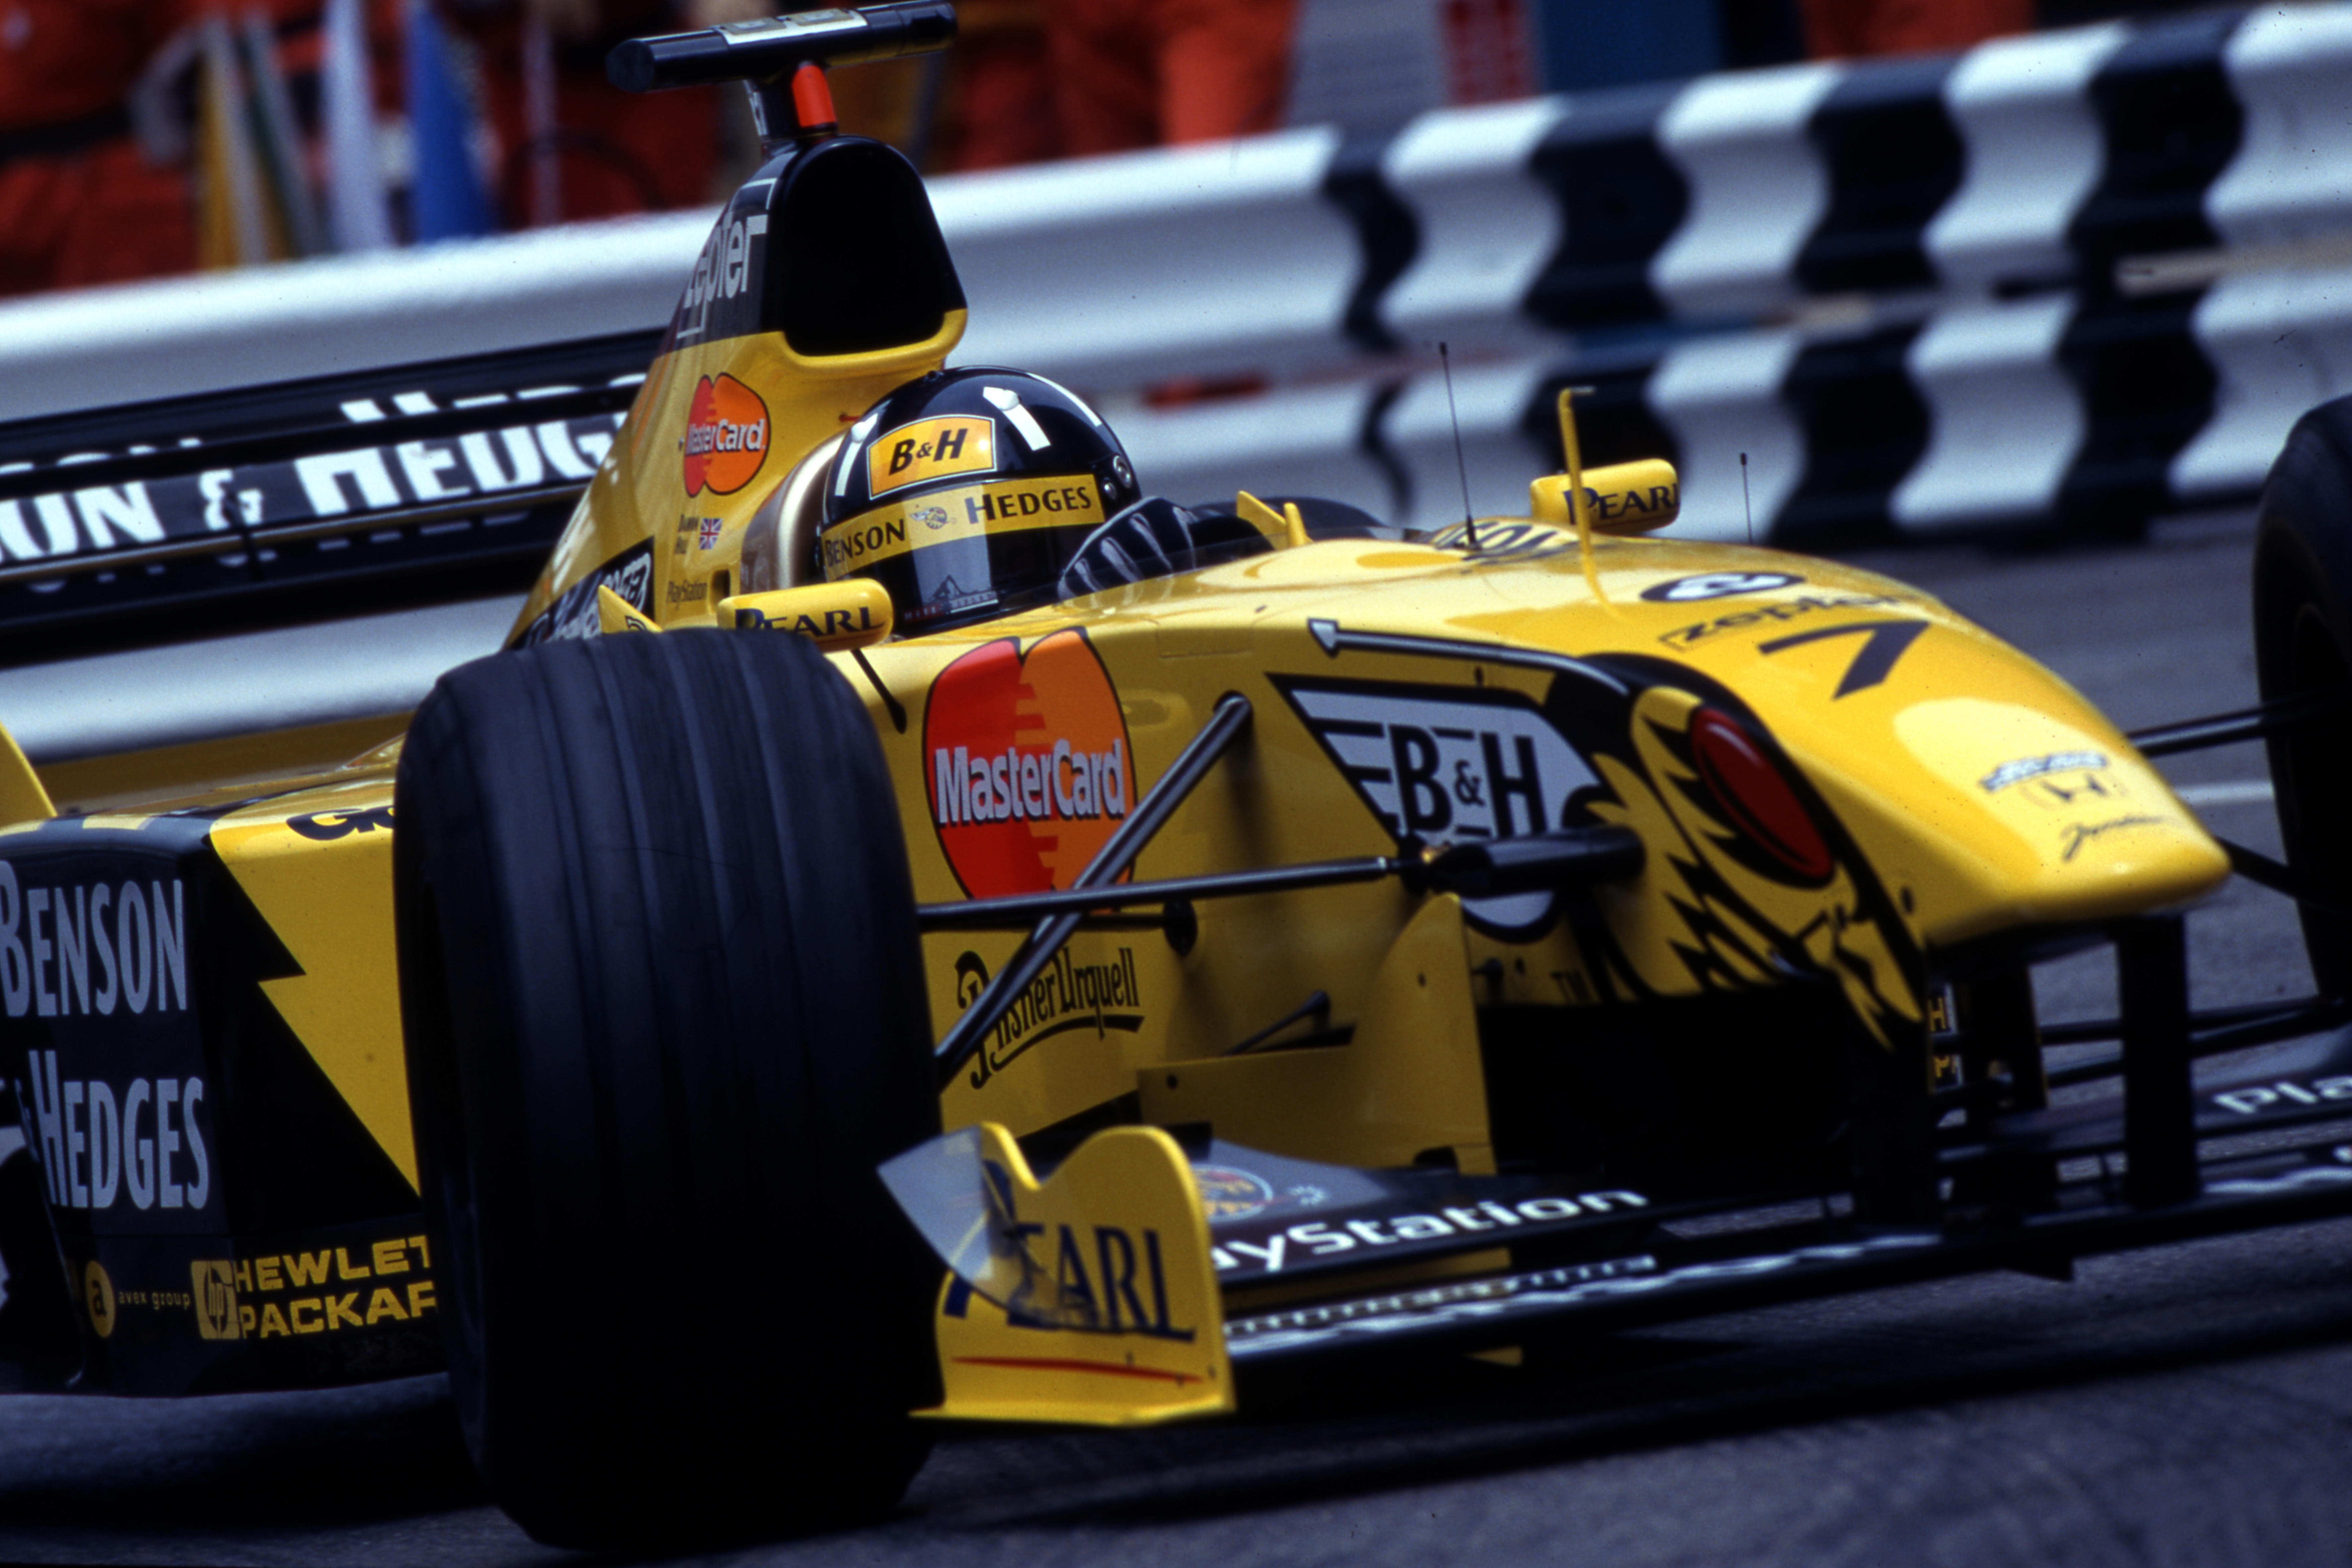 The Day Jordan S F1 Title Dream Soared Then Died The Race